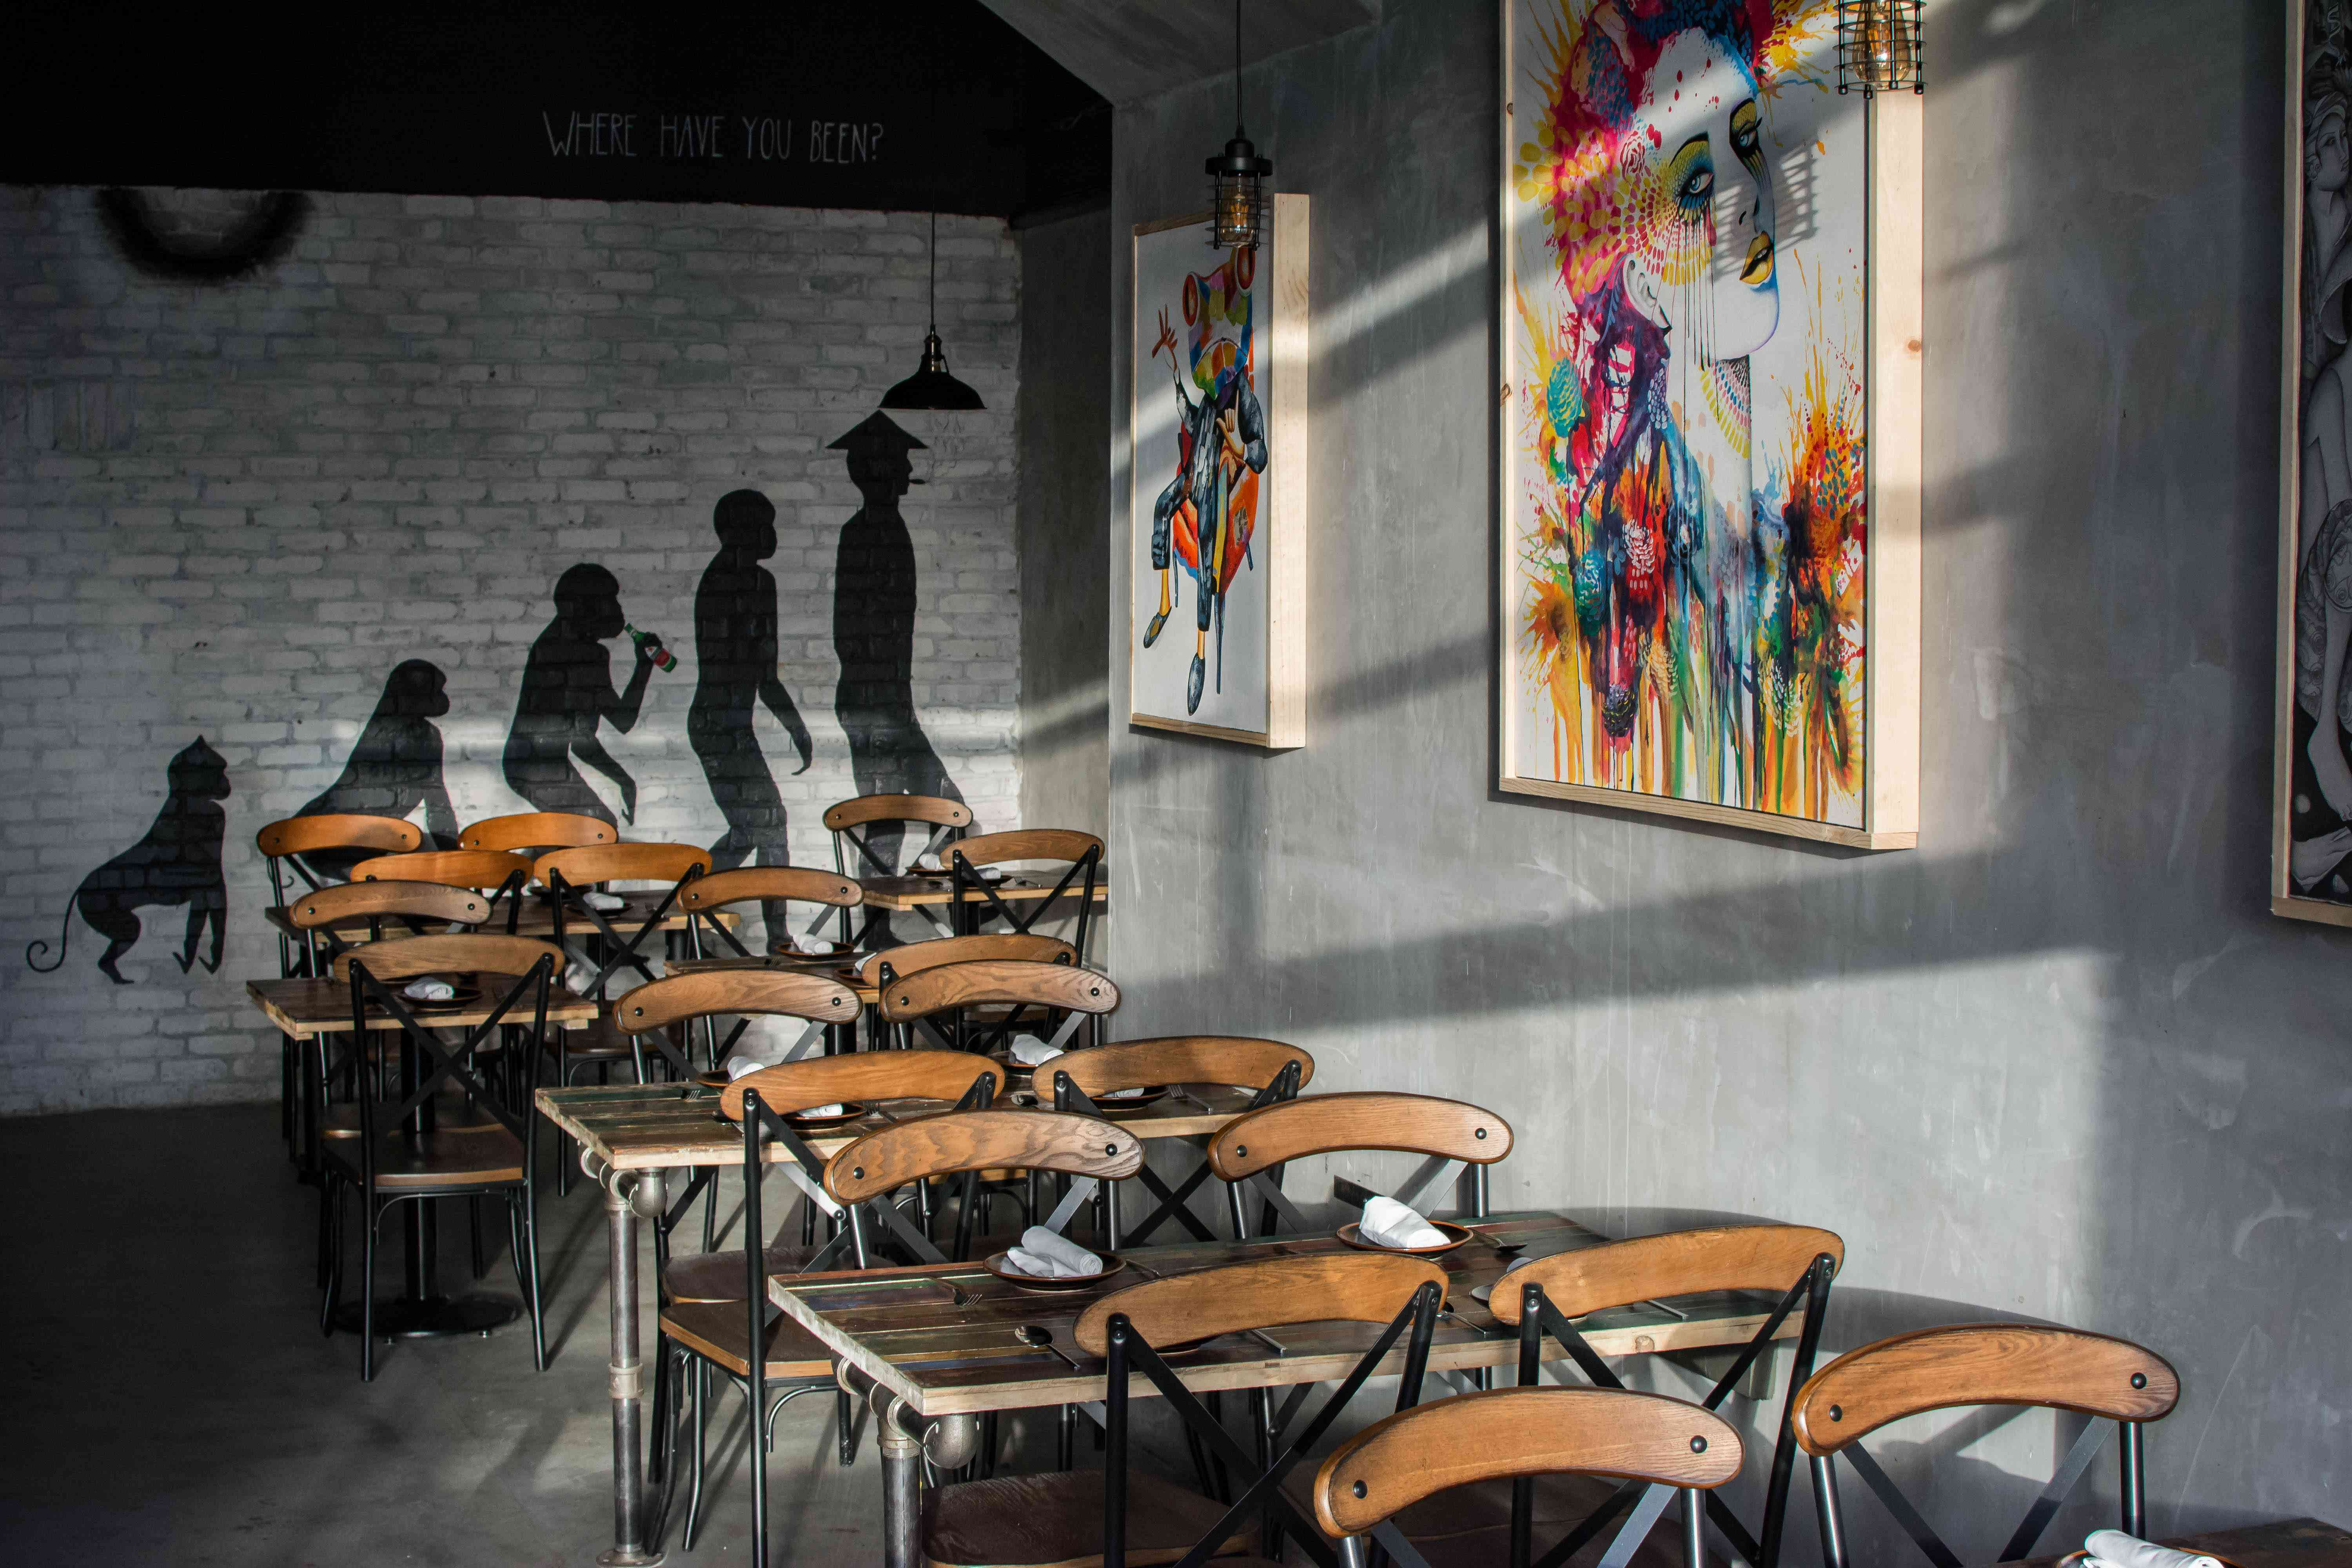 Chaires and tables in Dija Mara restaurant with colorful paintings on the gray walls